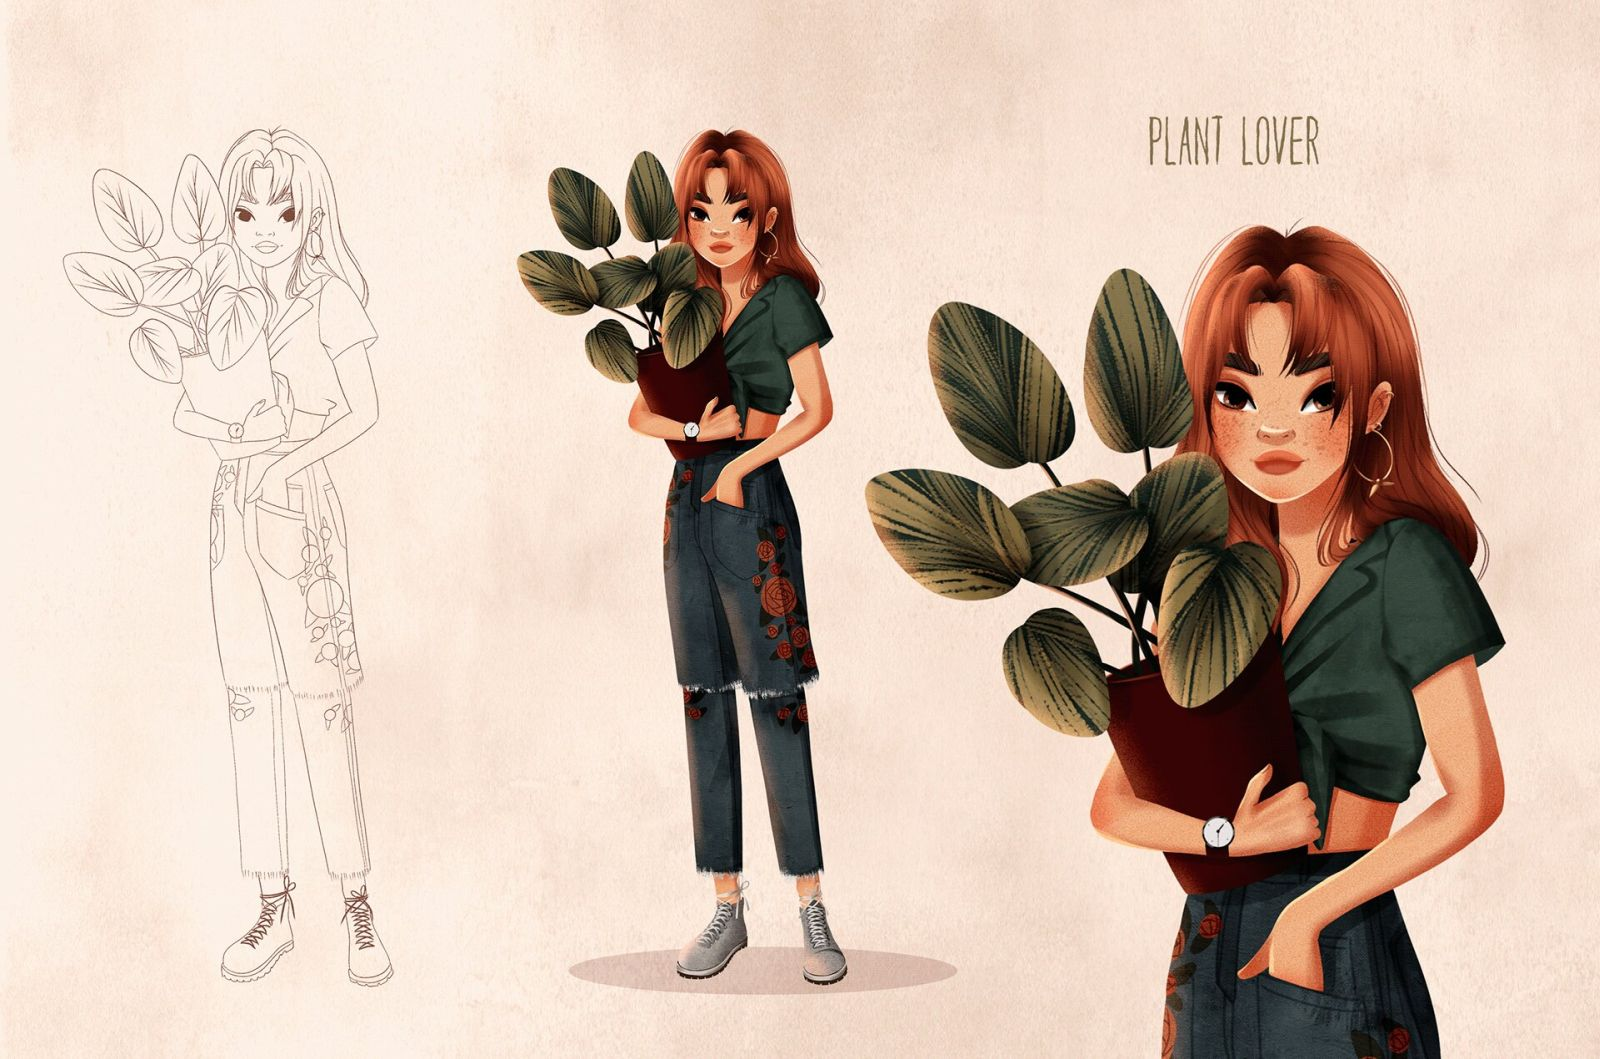 character design illustration plant lover